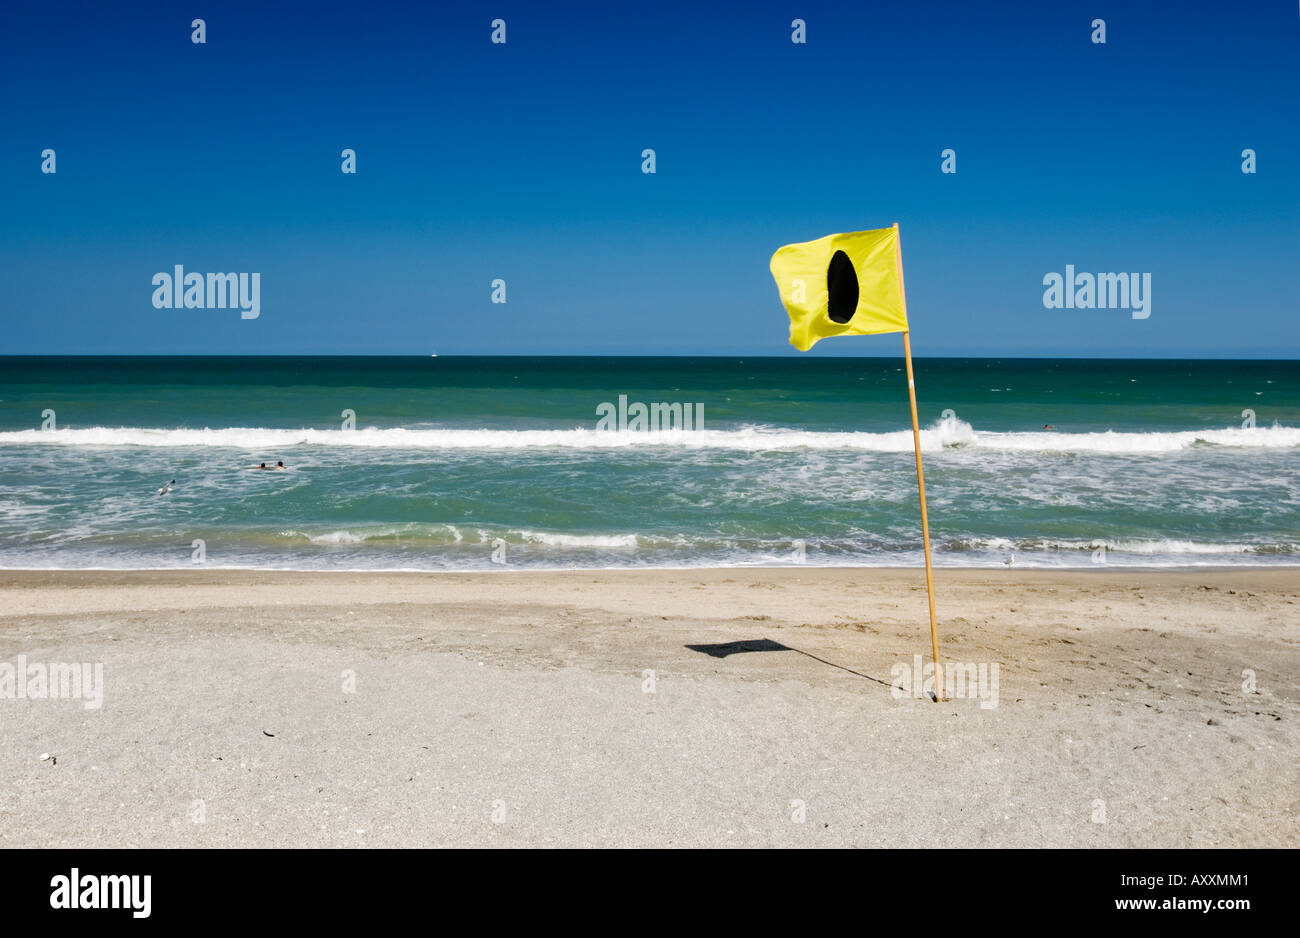 I flag Rule 30 1 Around the ends rule is in effect yellow flag with black dot circle solid round on beach - Stock Image